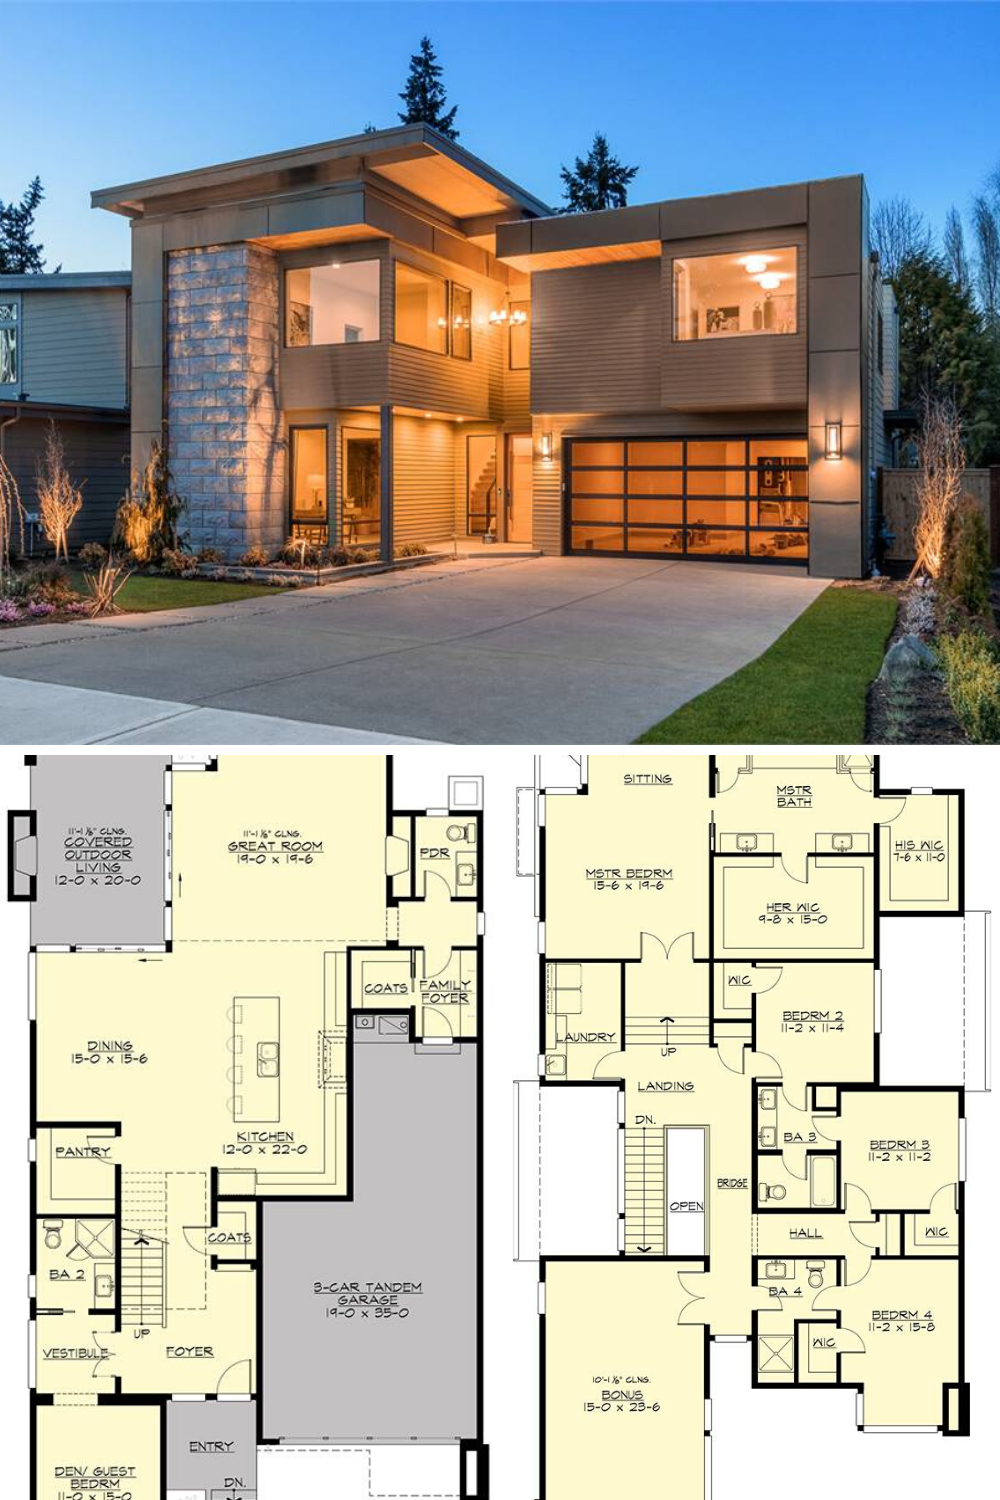 Two Story 4 Bedroom Sunoria Contemporary Style Home Floor Plan Best Modern House Design Modern House Floor Plans Modern Contemporary House Plans